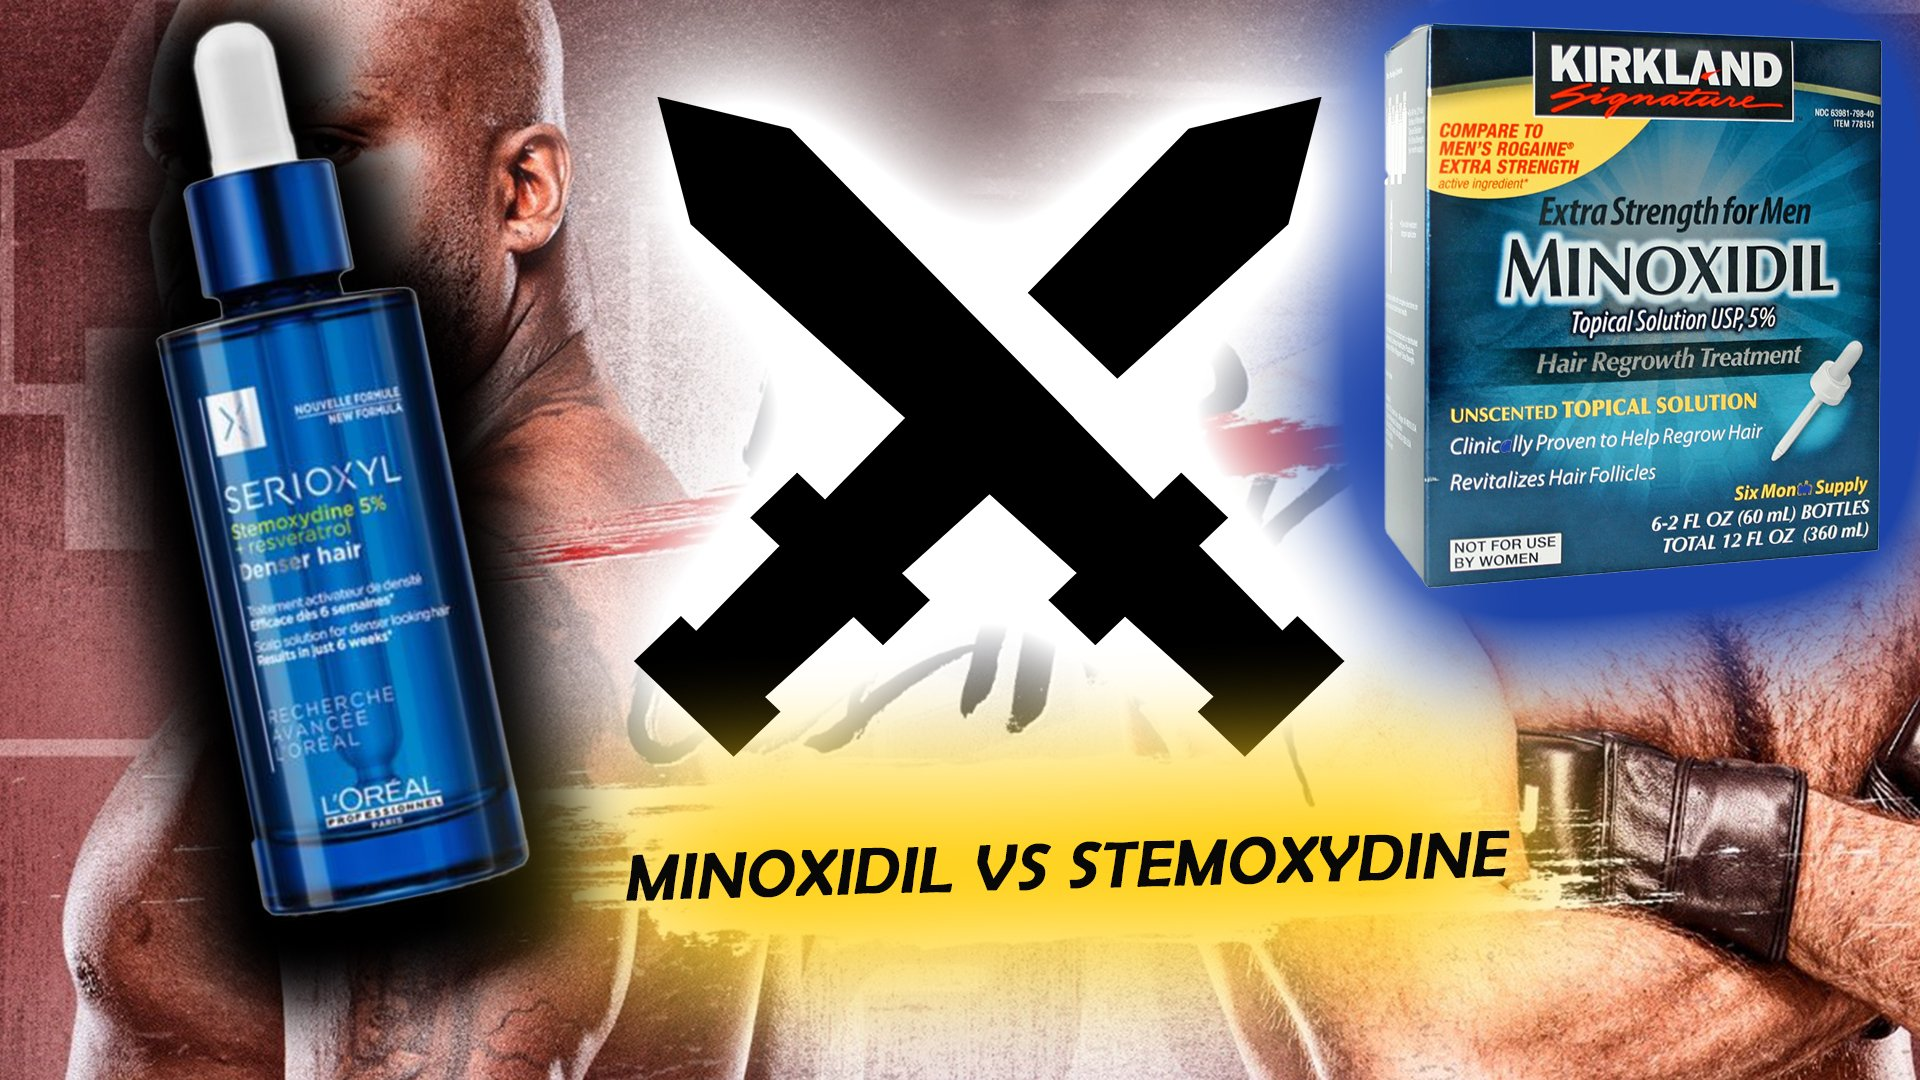 Minoxidil vs Stemoxydine for hair growth